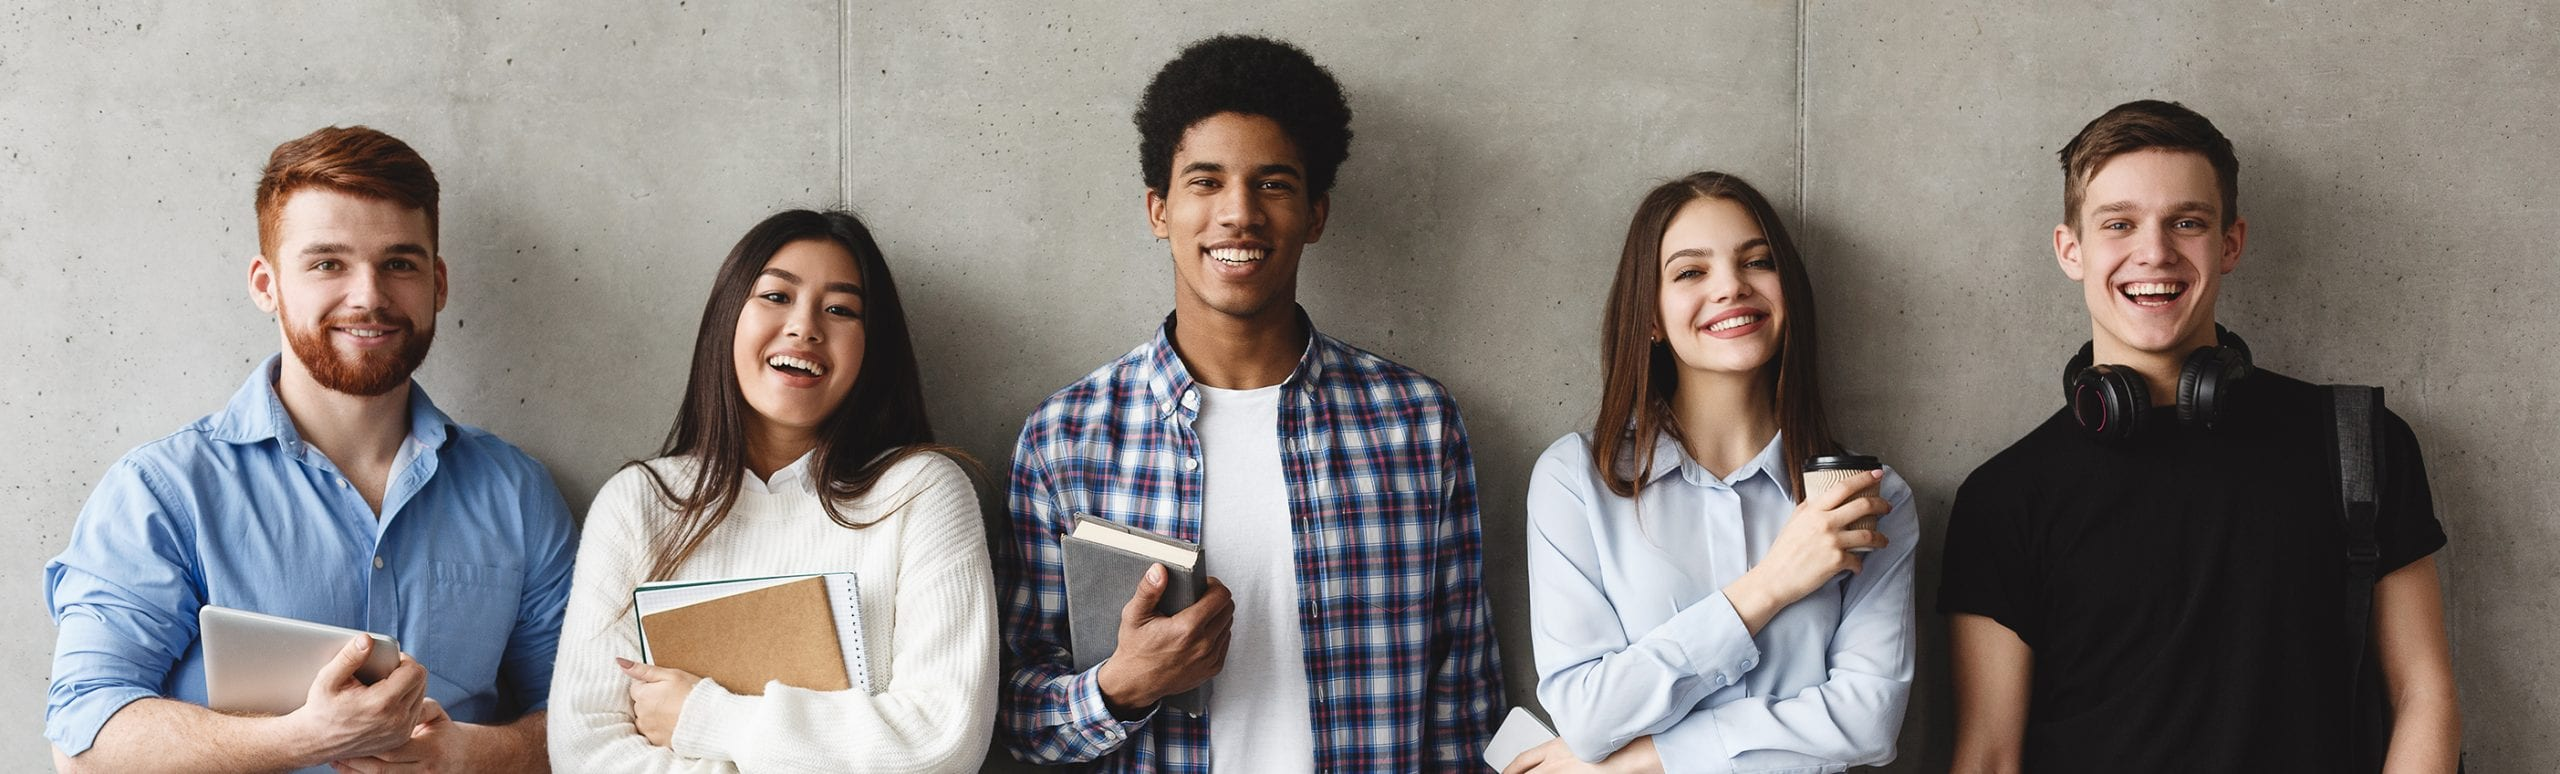 College students with books smiling to camera over grey wall, having break